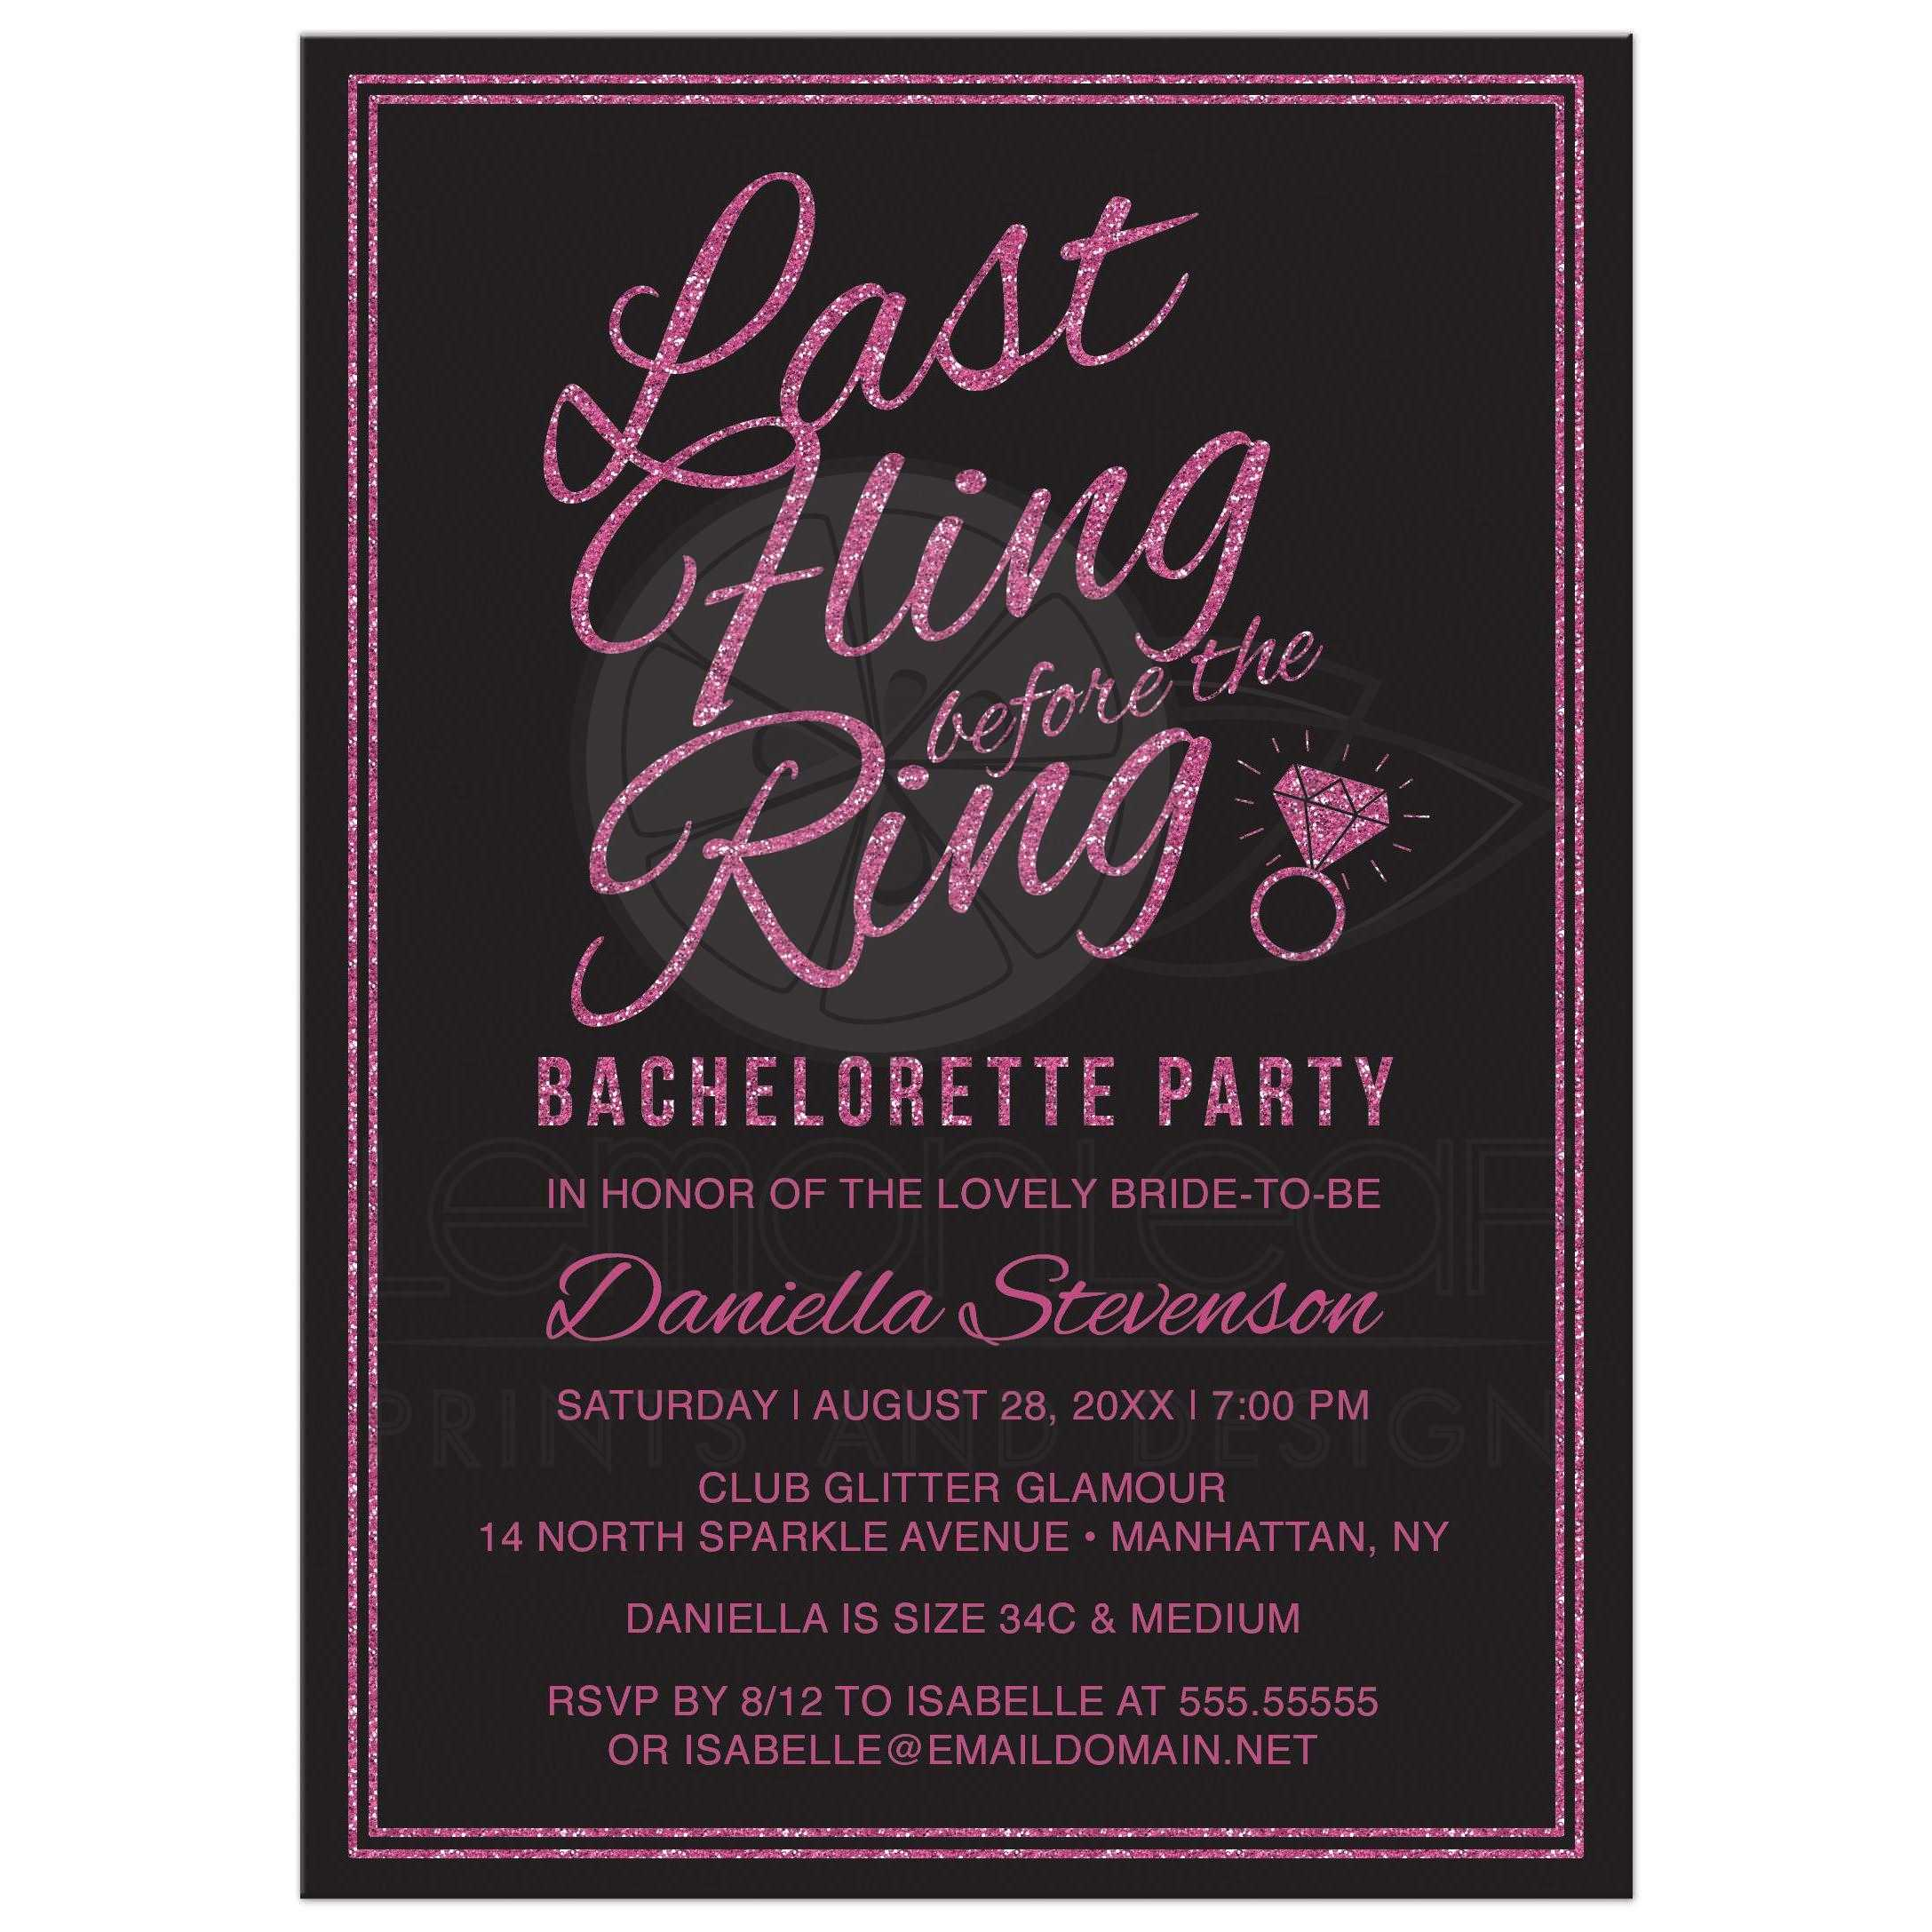 Bachelorette Party Invitations Hot Pink Glitter Look Last Fling